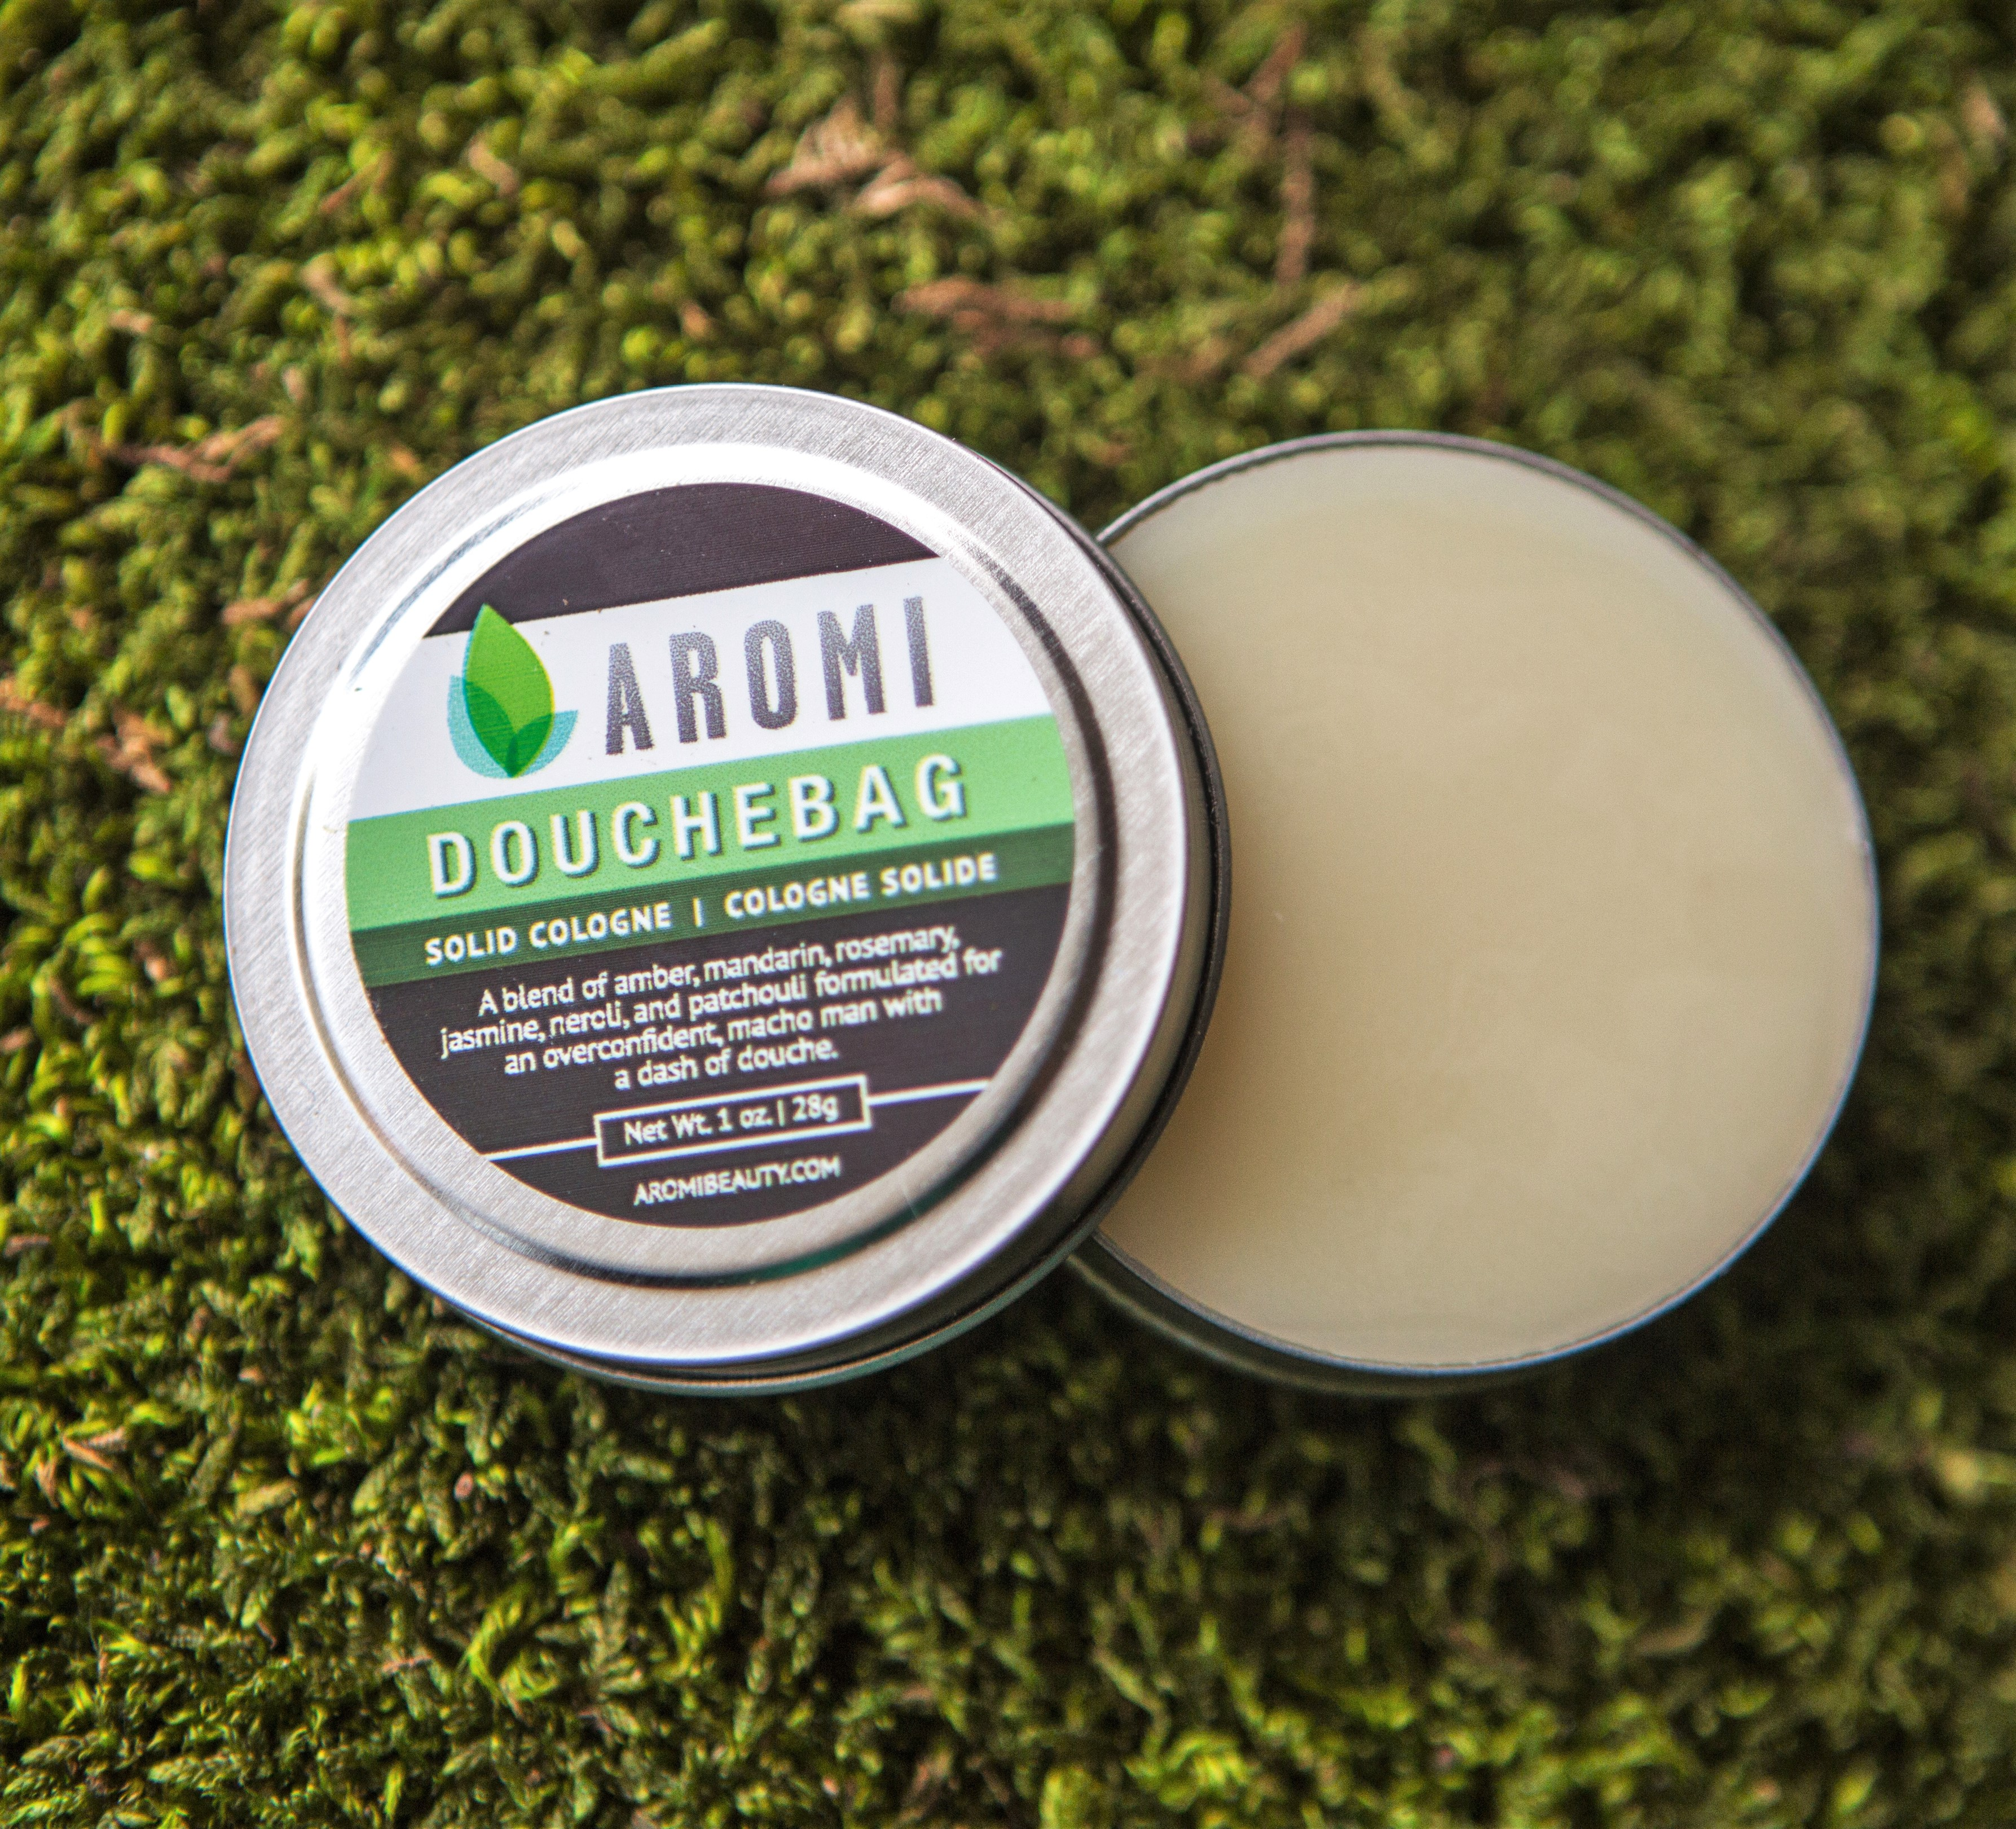 Aromi Douchebag Solid Cologne